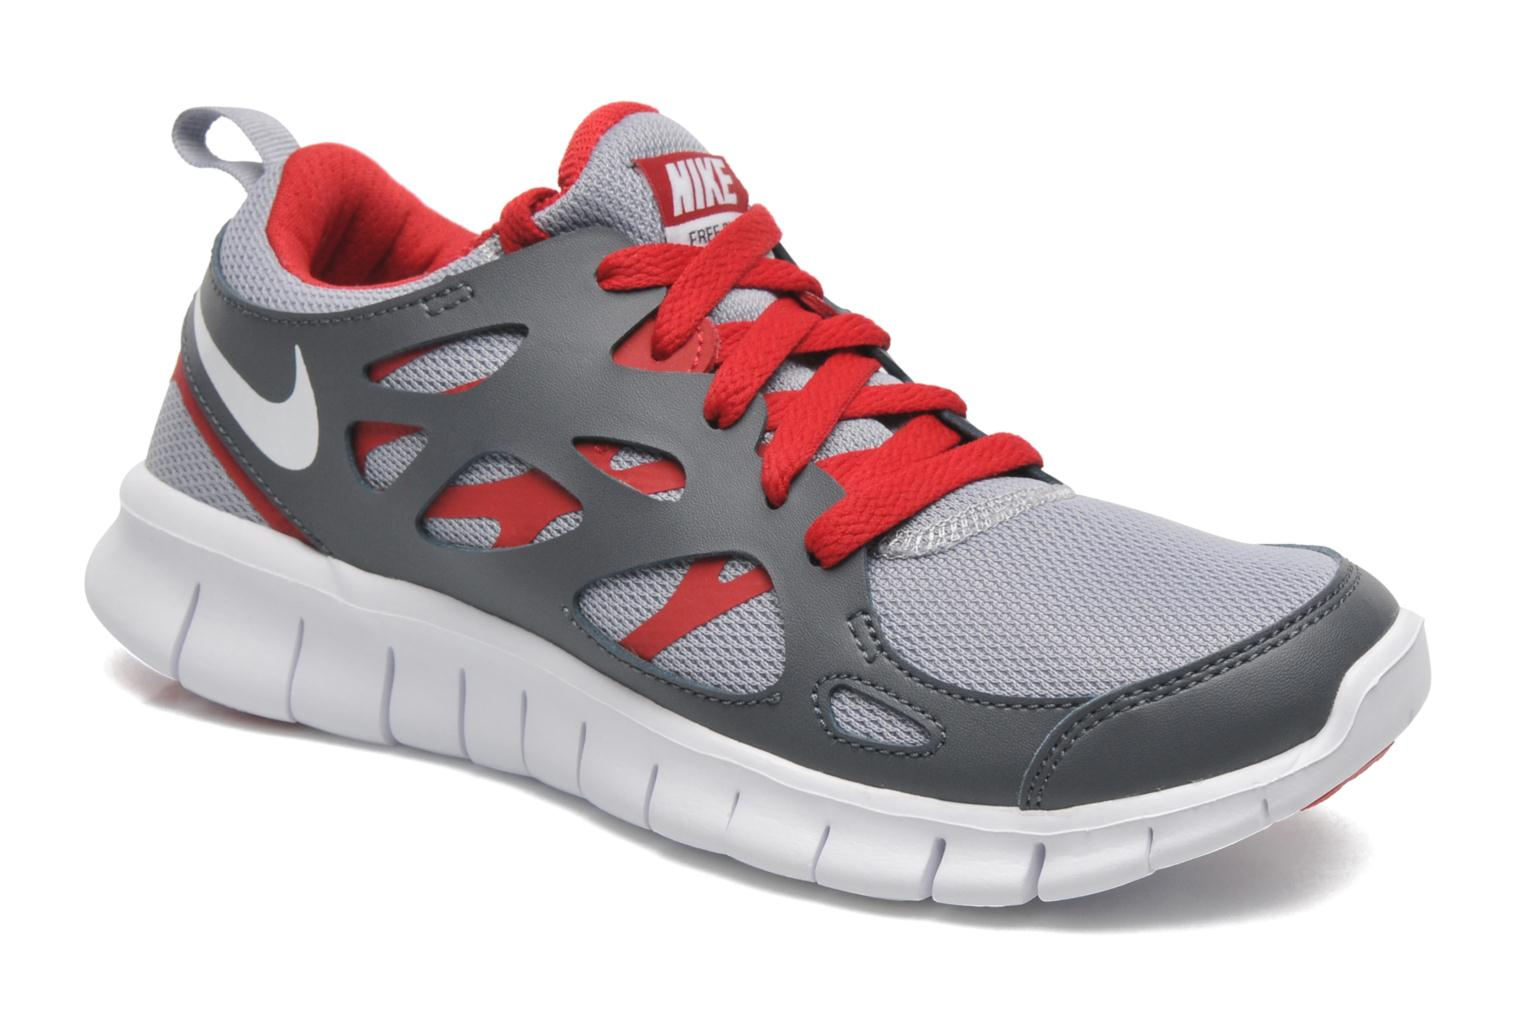 NIKE FREE RUN 2 (GS) WOLF GREY/WHITE-GYM RD-DRK GRY